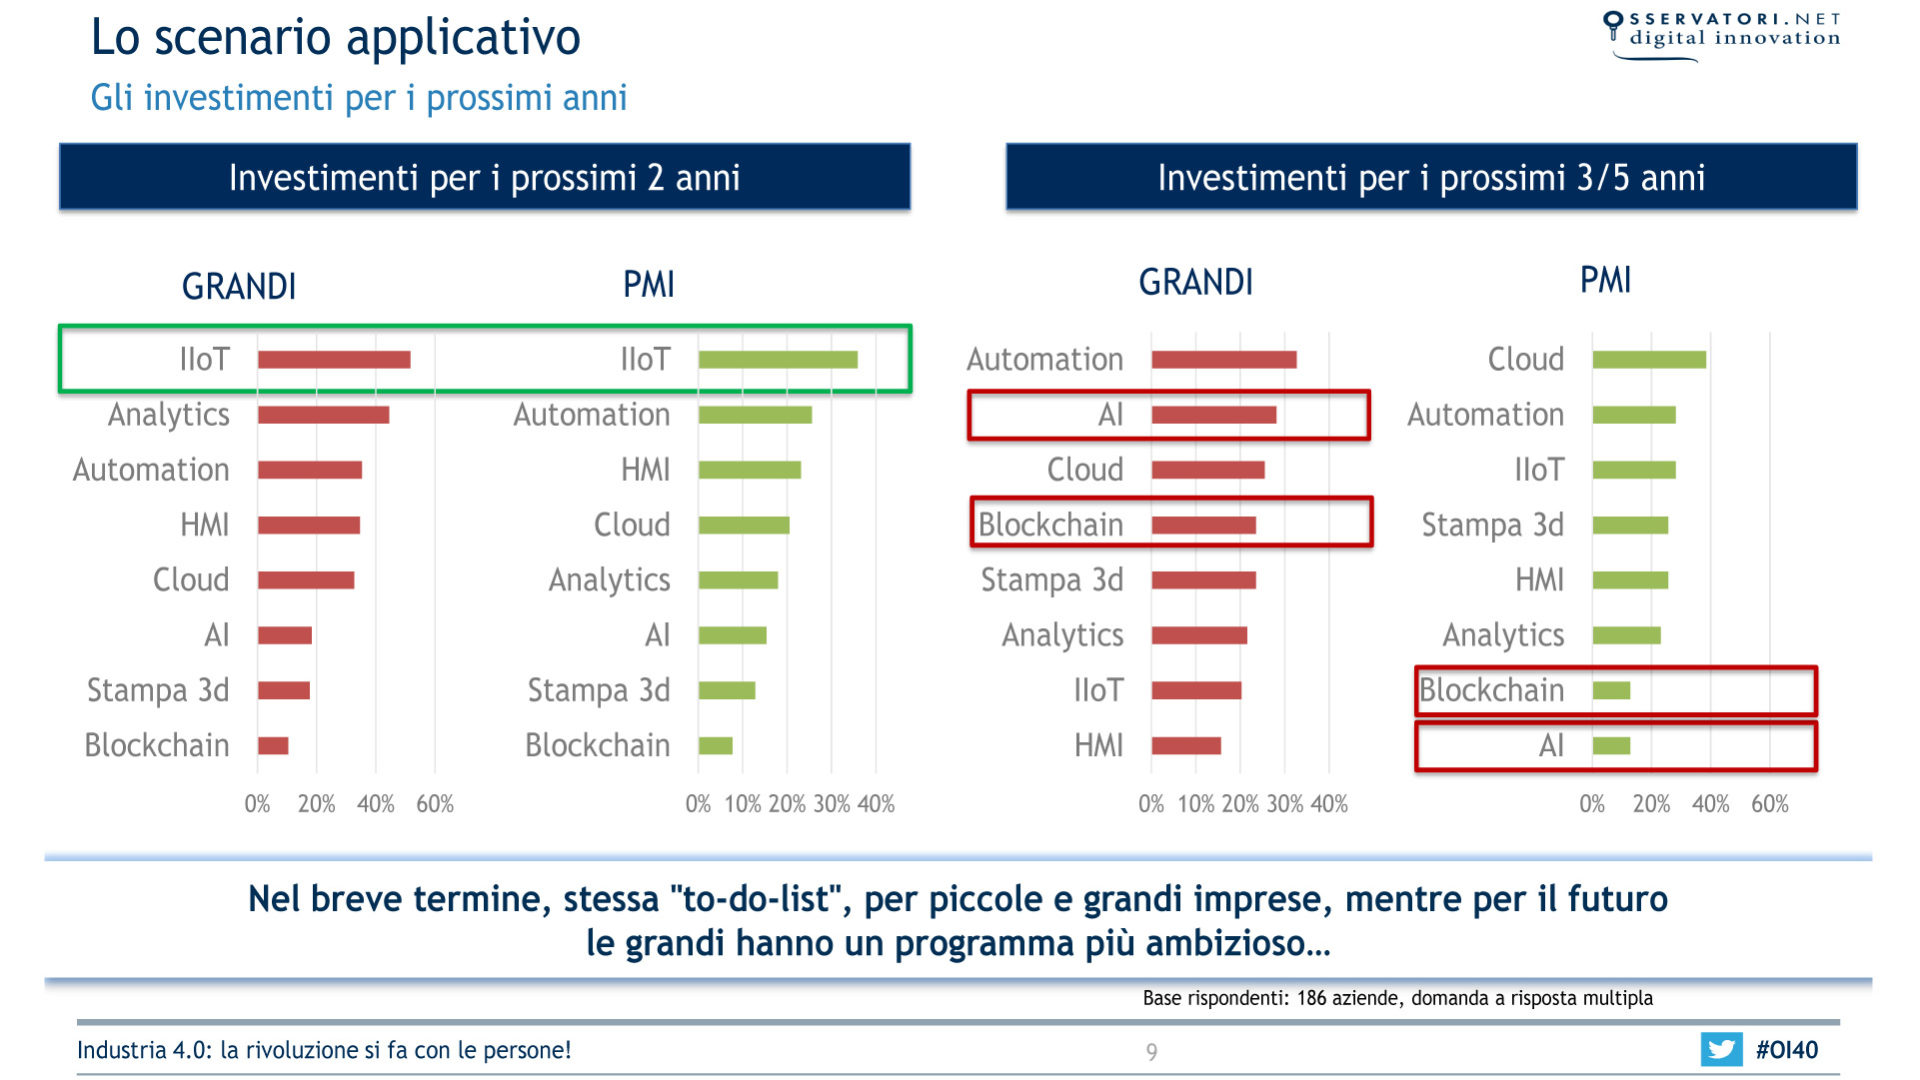 Grafico che mostra Lo scenario applicativo dell'Industria 4.0